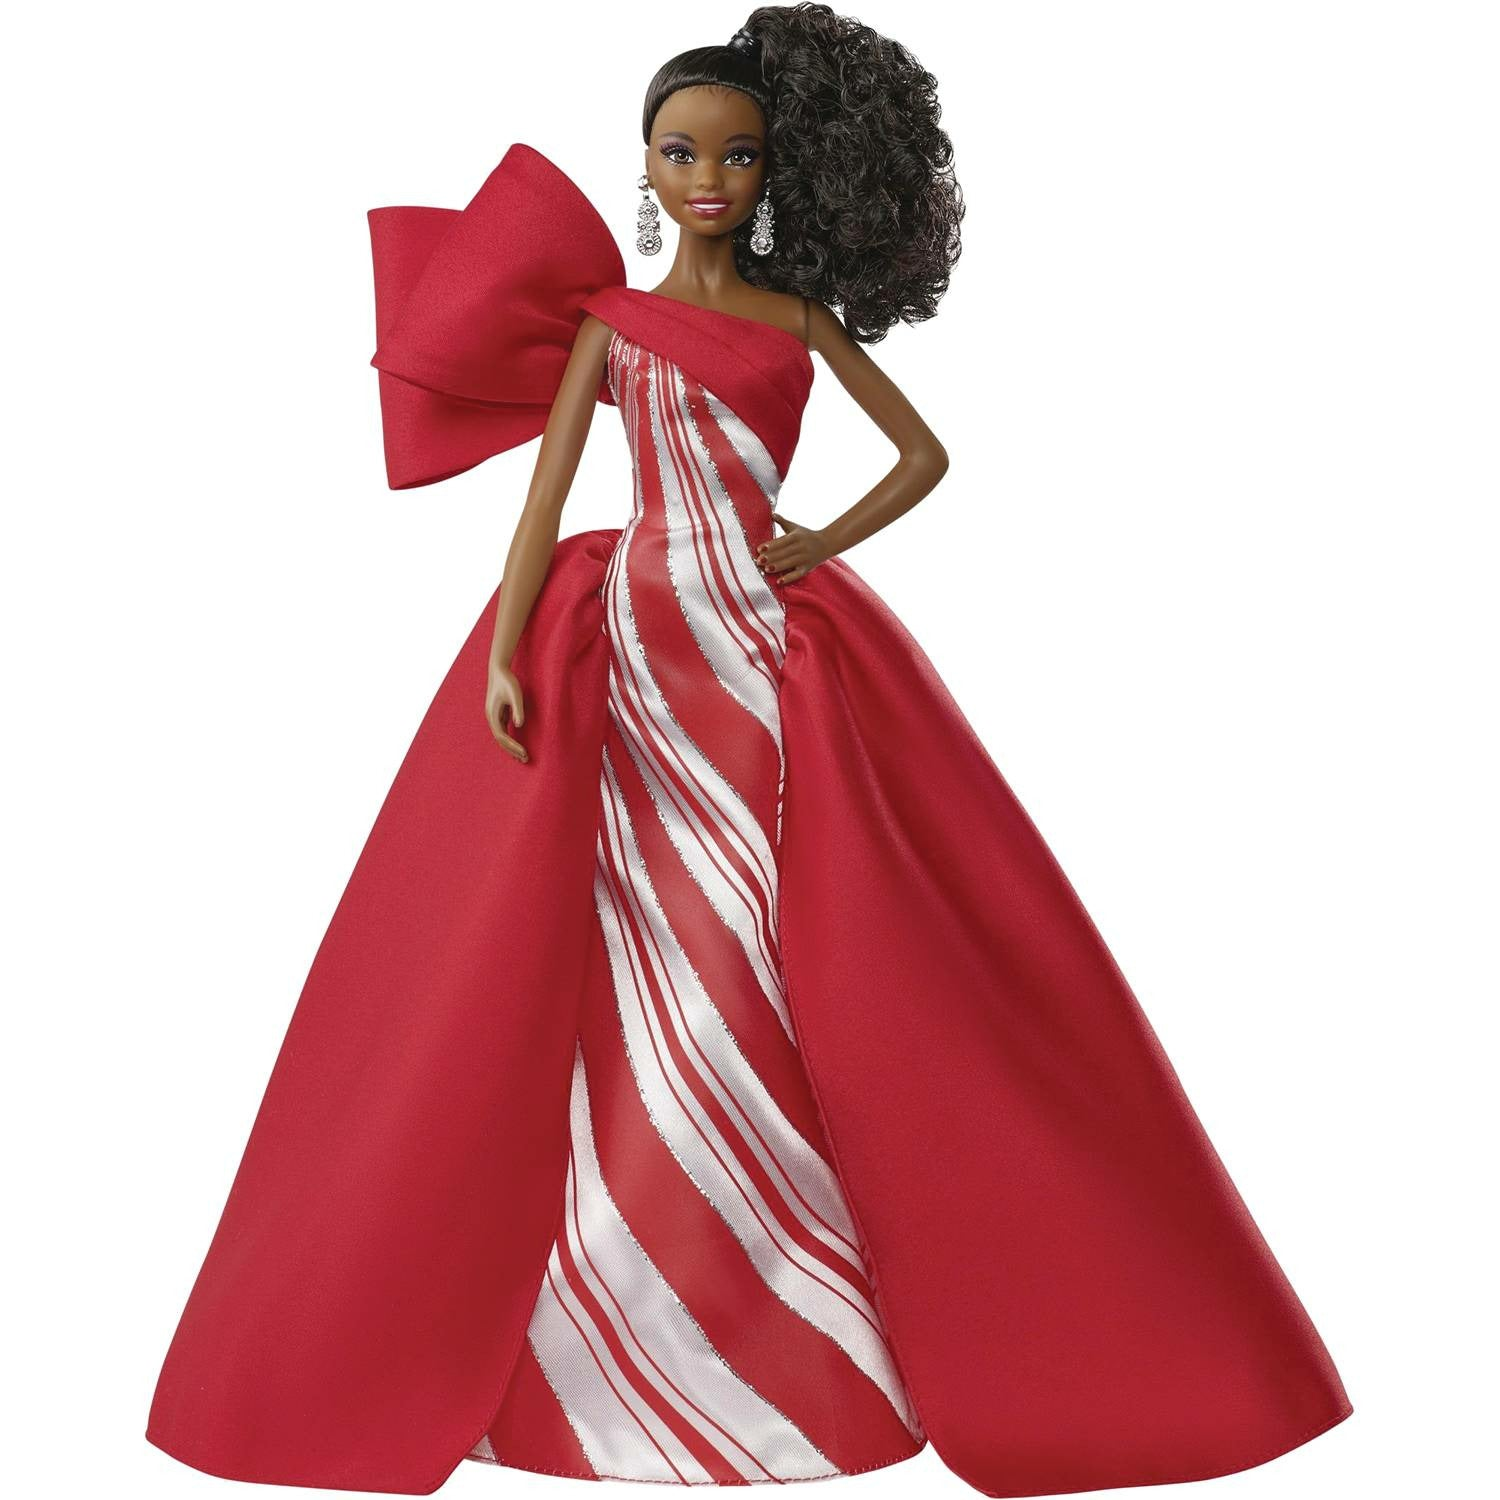 Barbie 2019 Holiday Coll Doll Aa Version